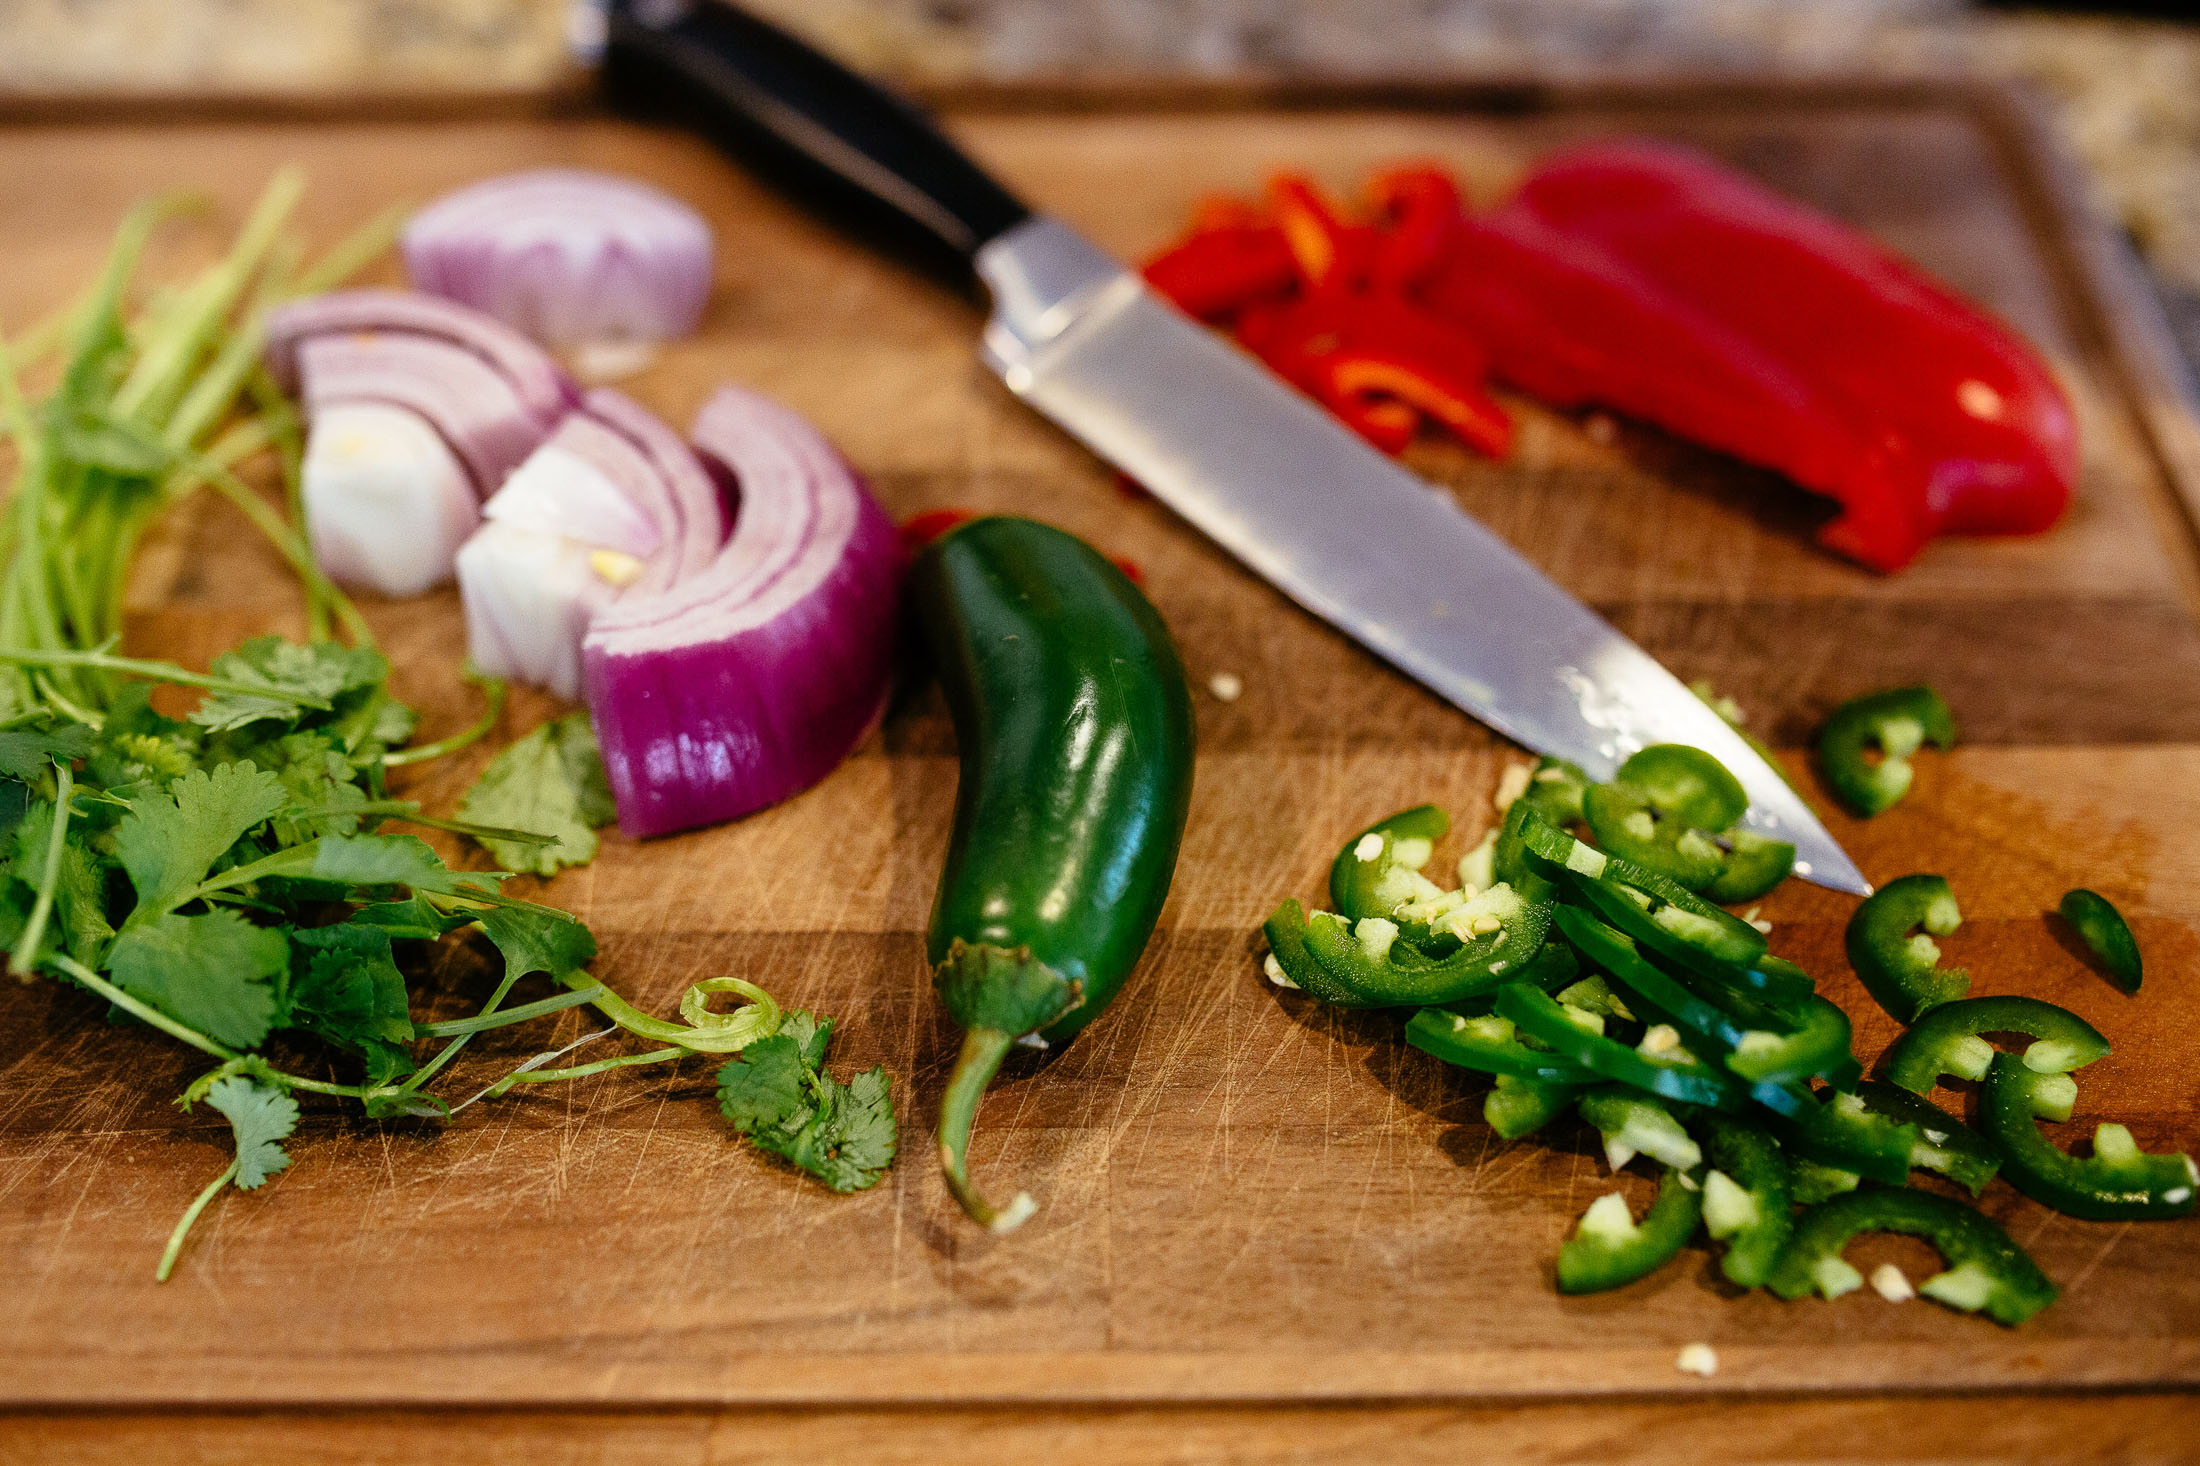 Vegetables and knife on a cutting board.